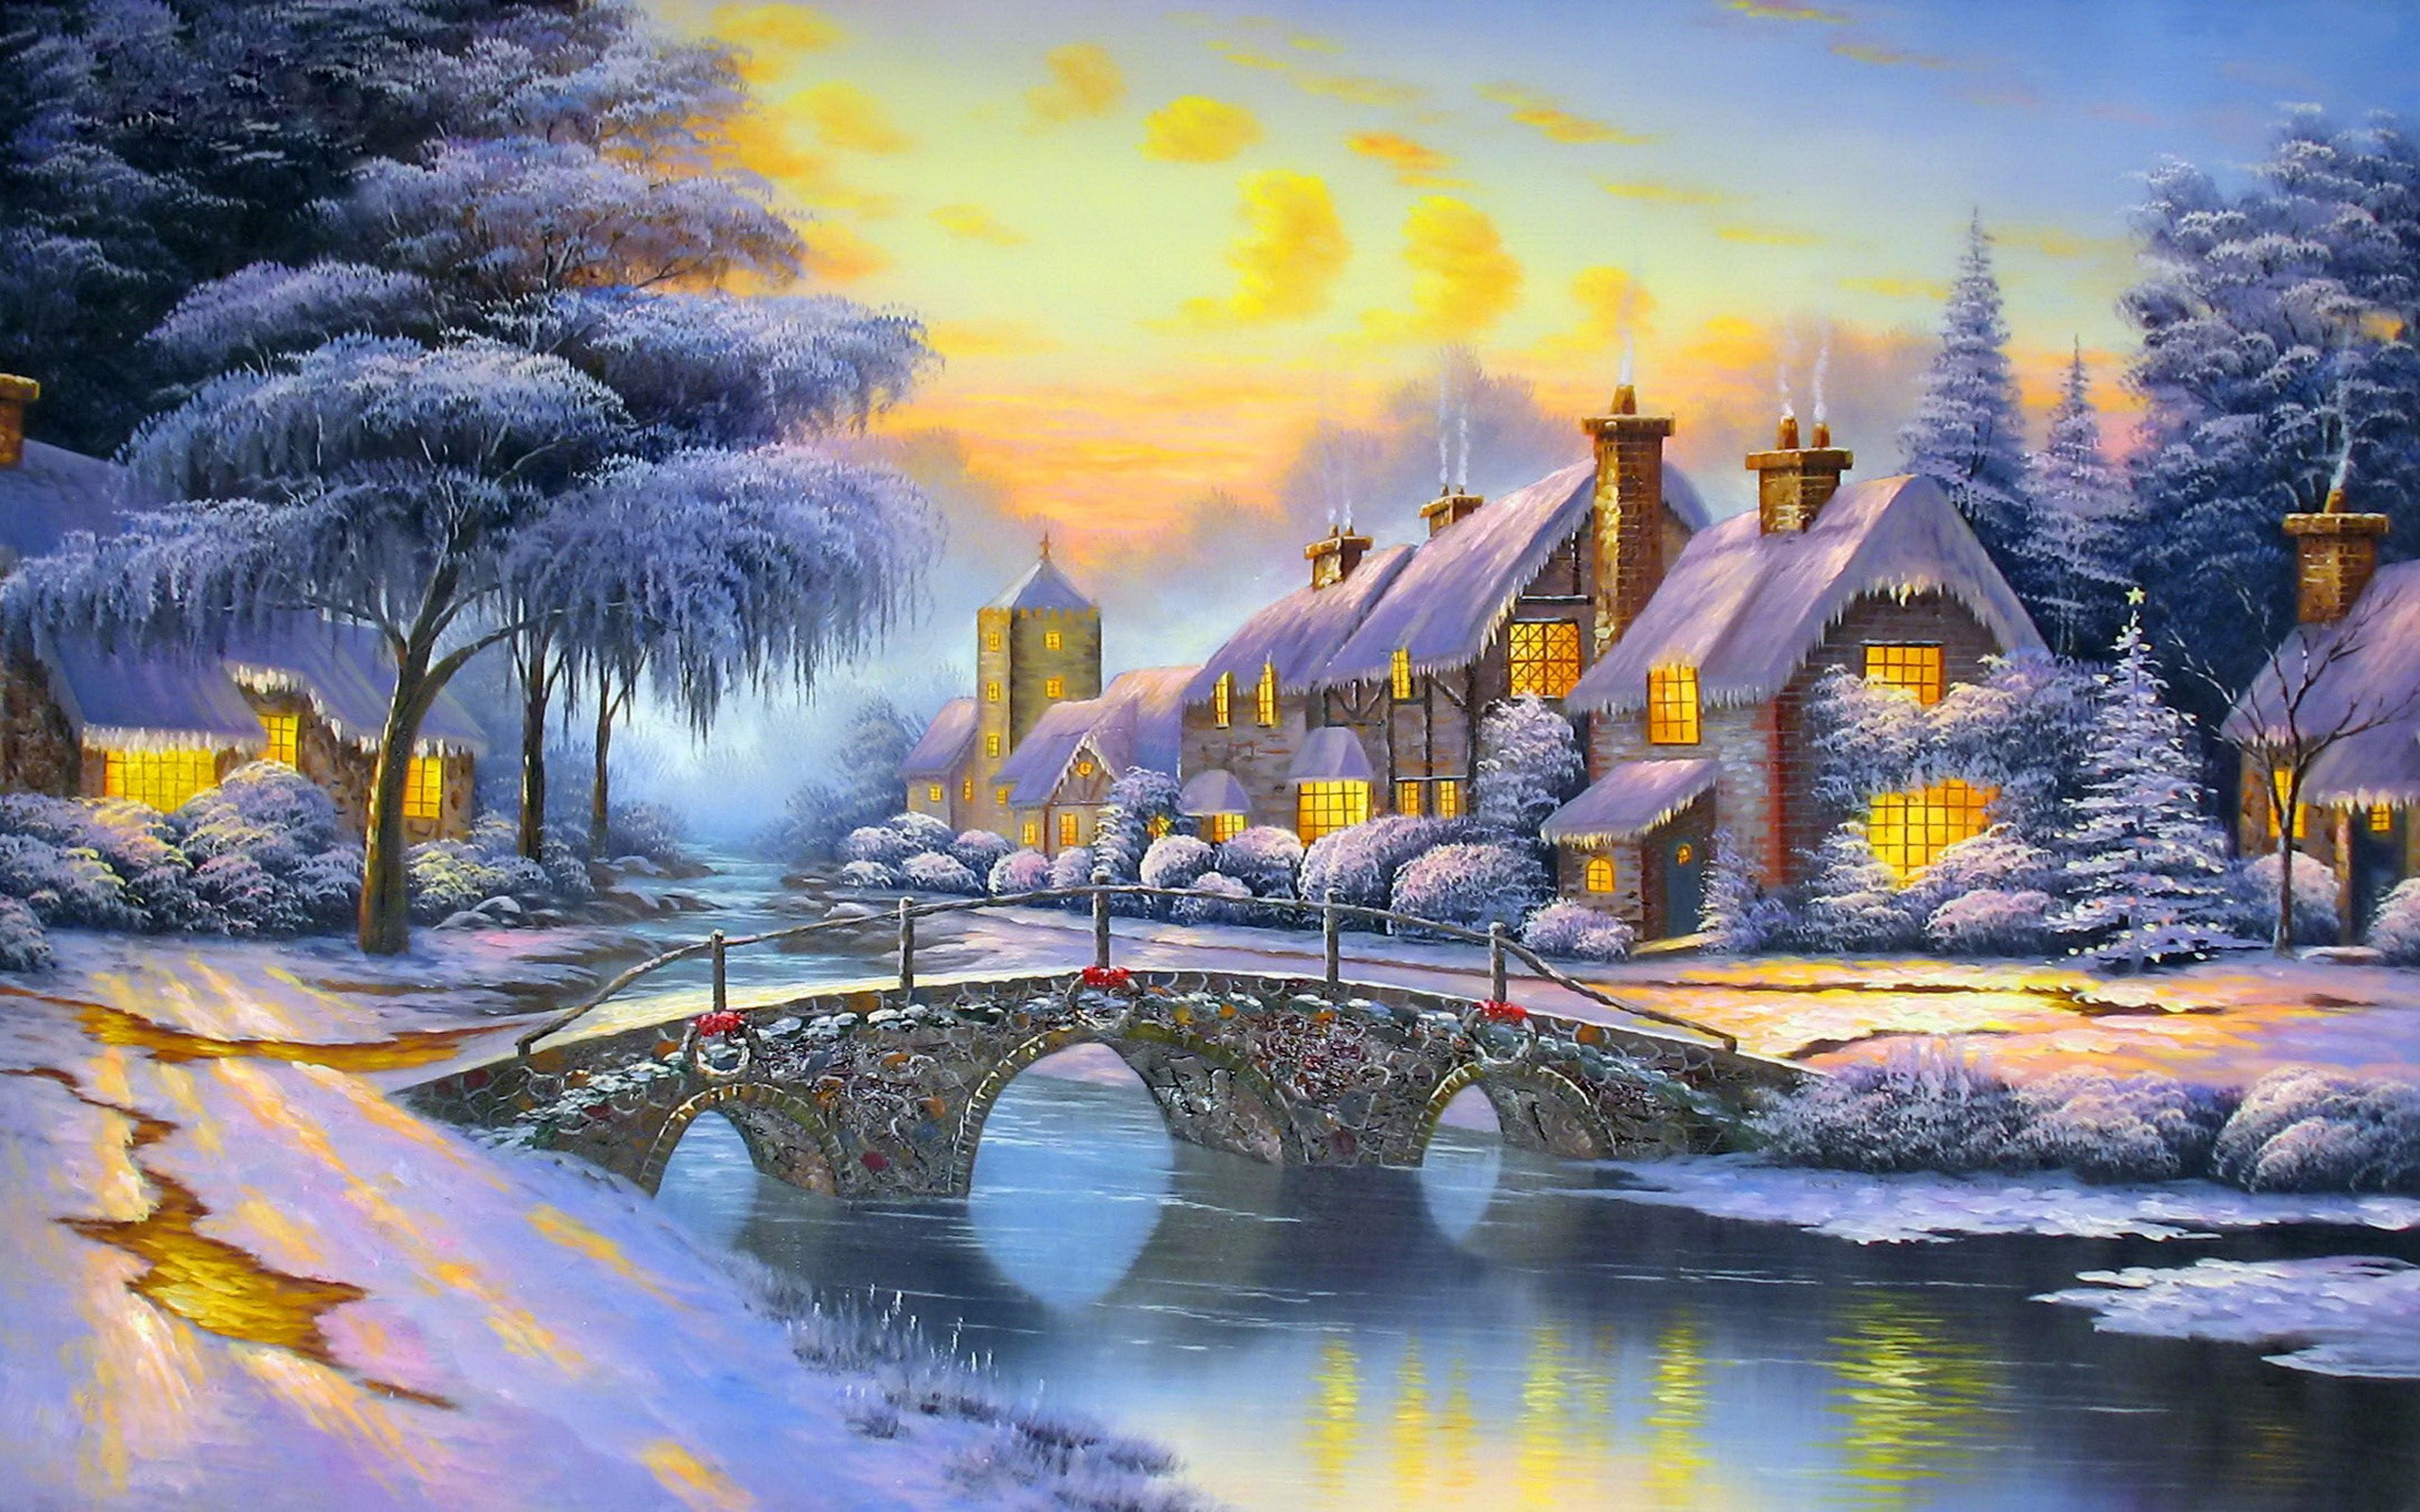 Winter Village Full Hd Wallpaper And Background